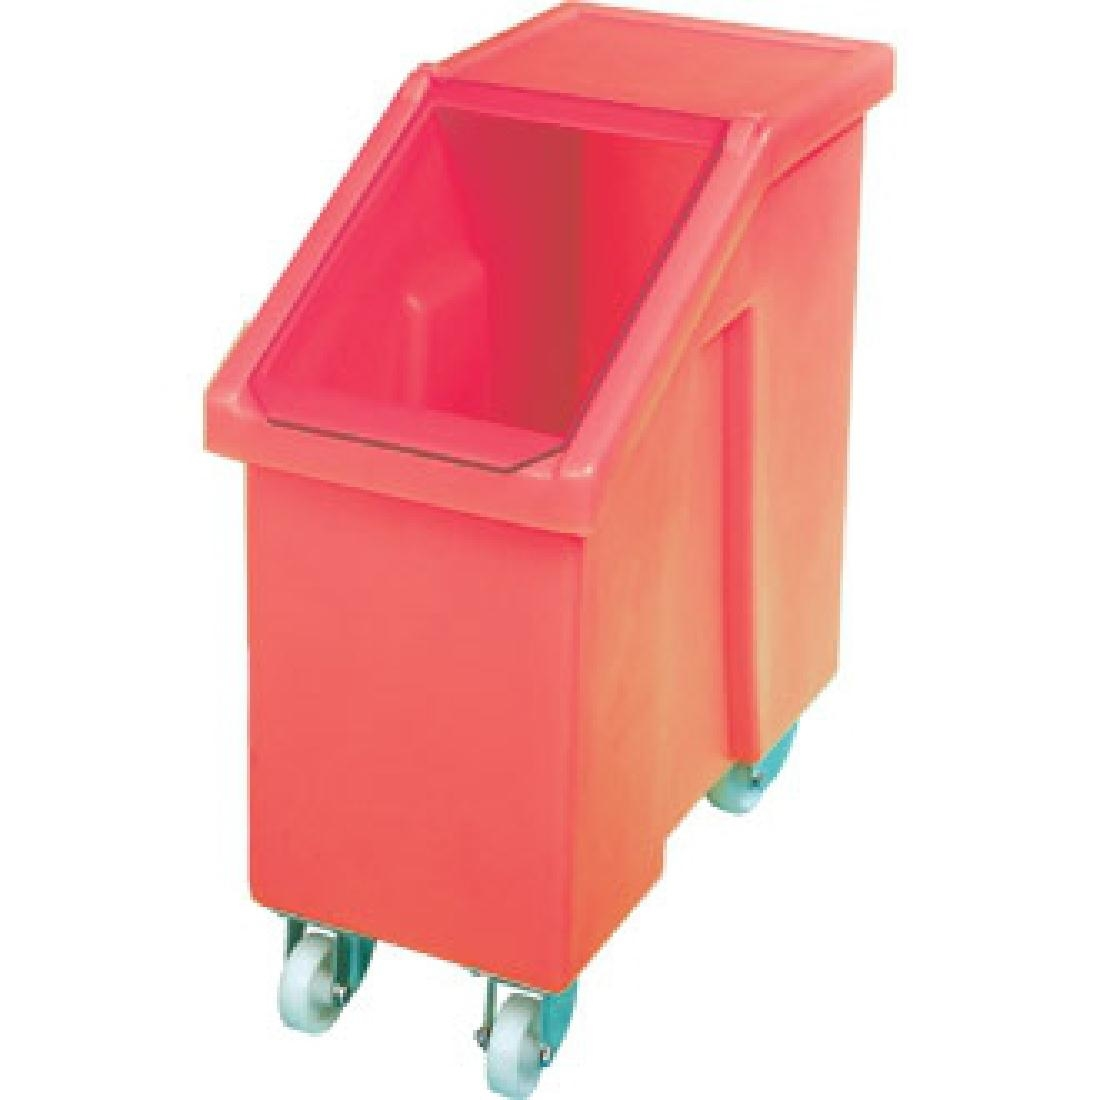 Image of Mobileingredient Bin 90Ltr Red